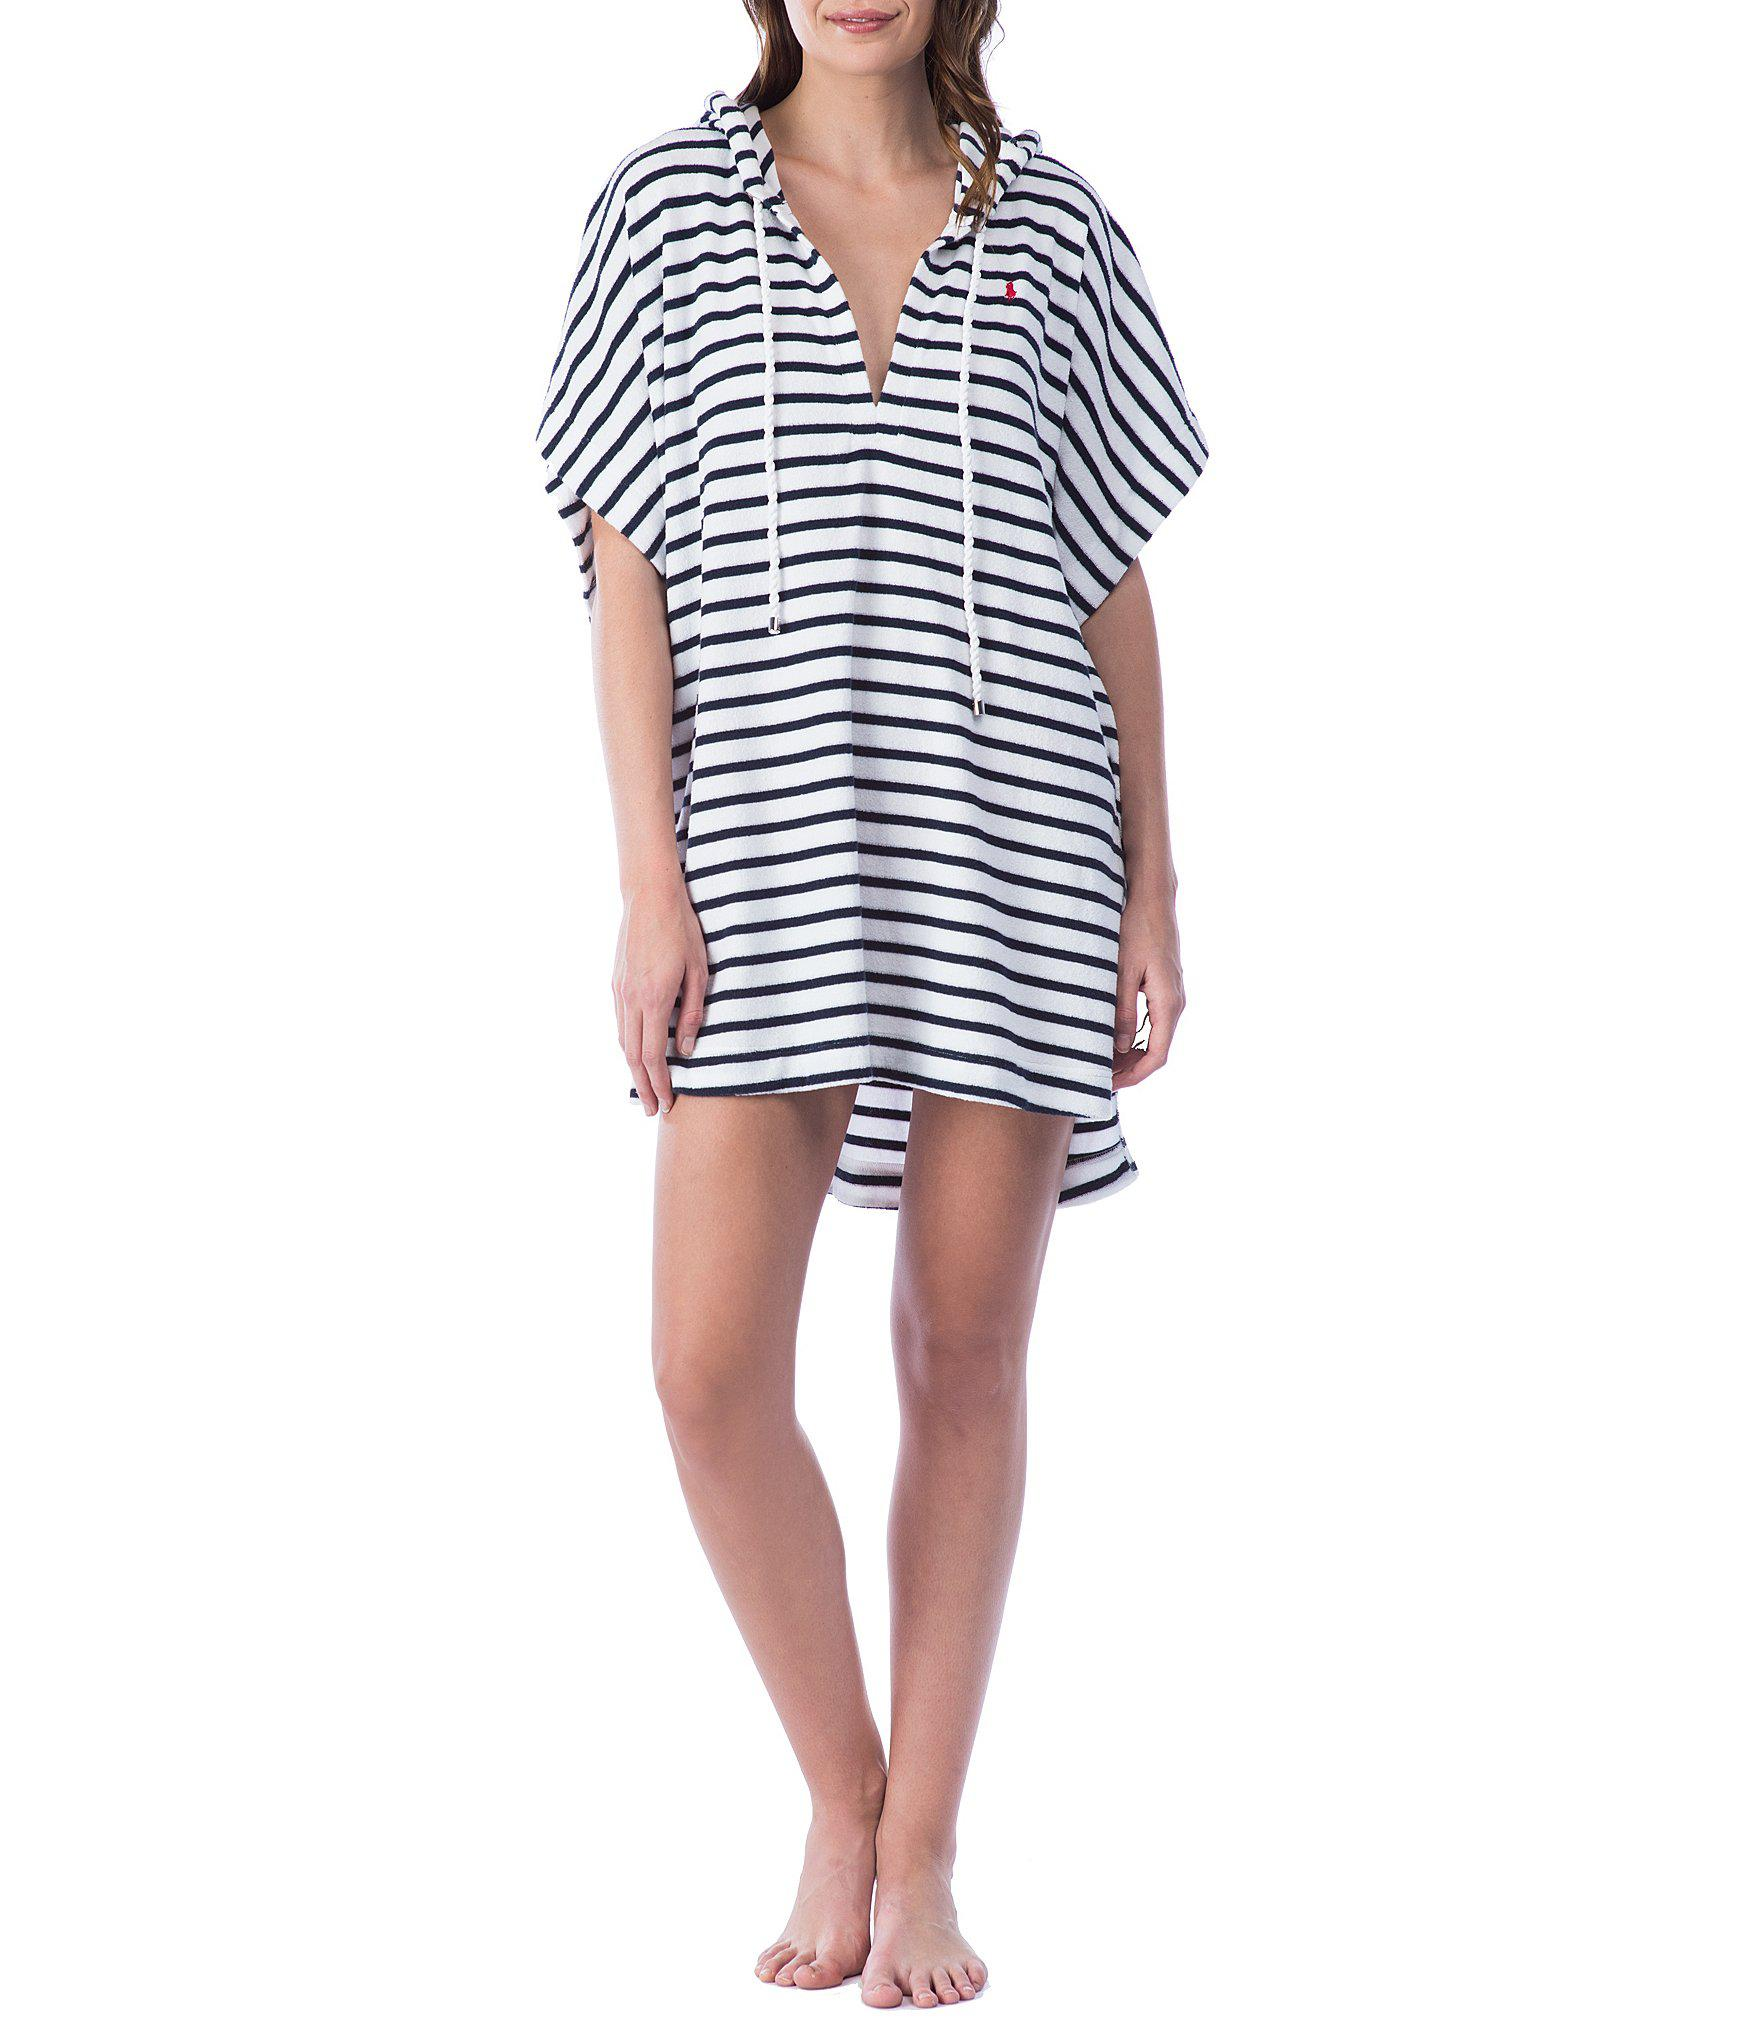 b9ecd25738 Polo Ralph Lauren Embroidered Terry Stripe Hooded Swimsuit Cover-up ...